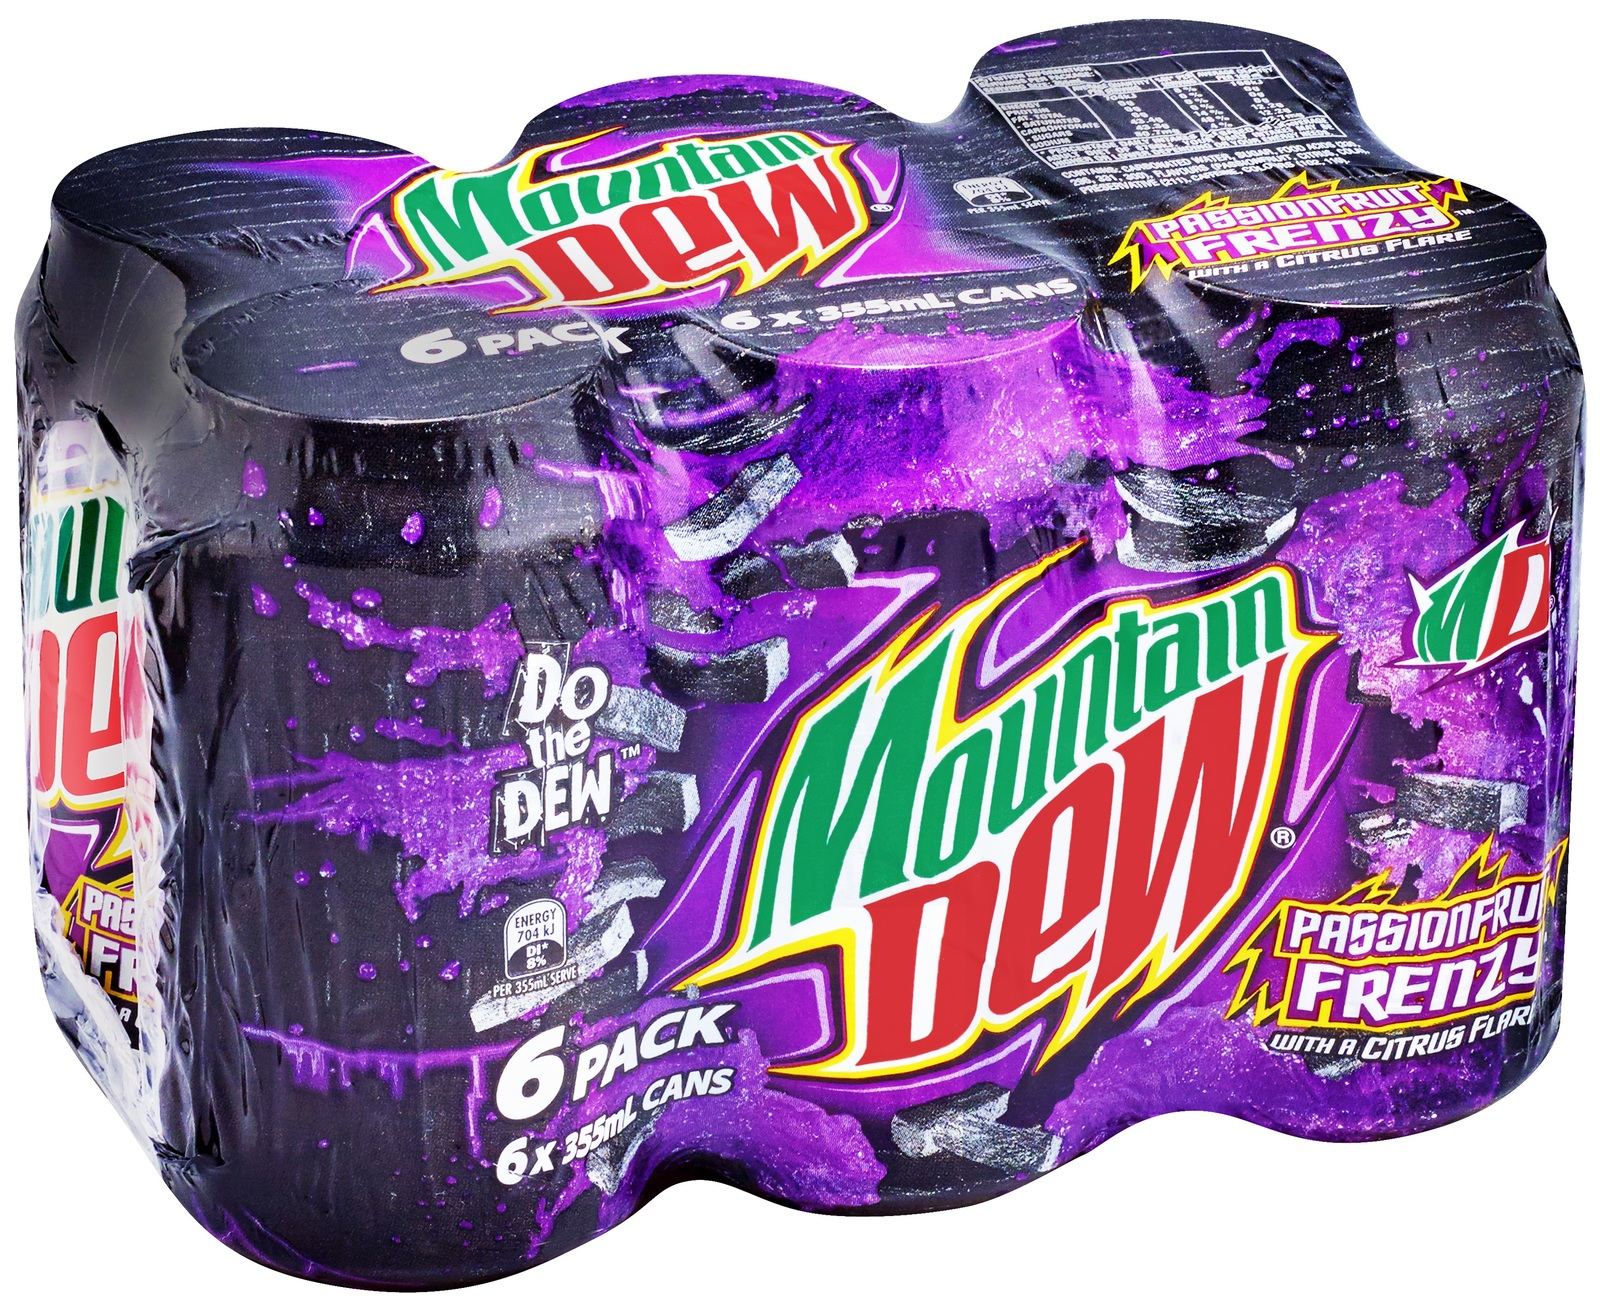 Mountain Dew Passionfruit Cans 355ml 24pk image